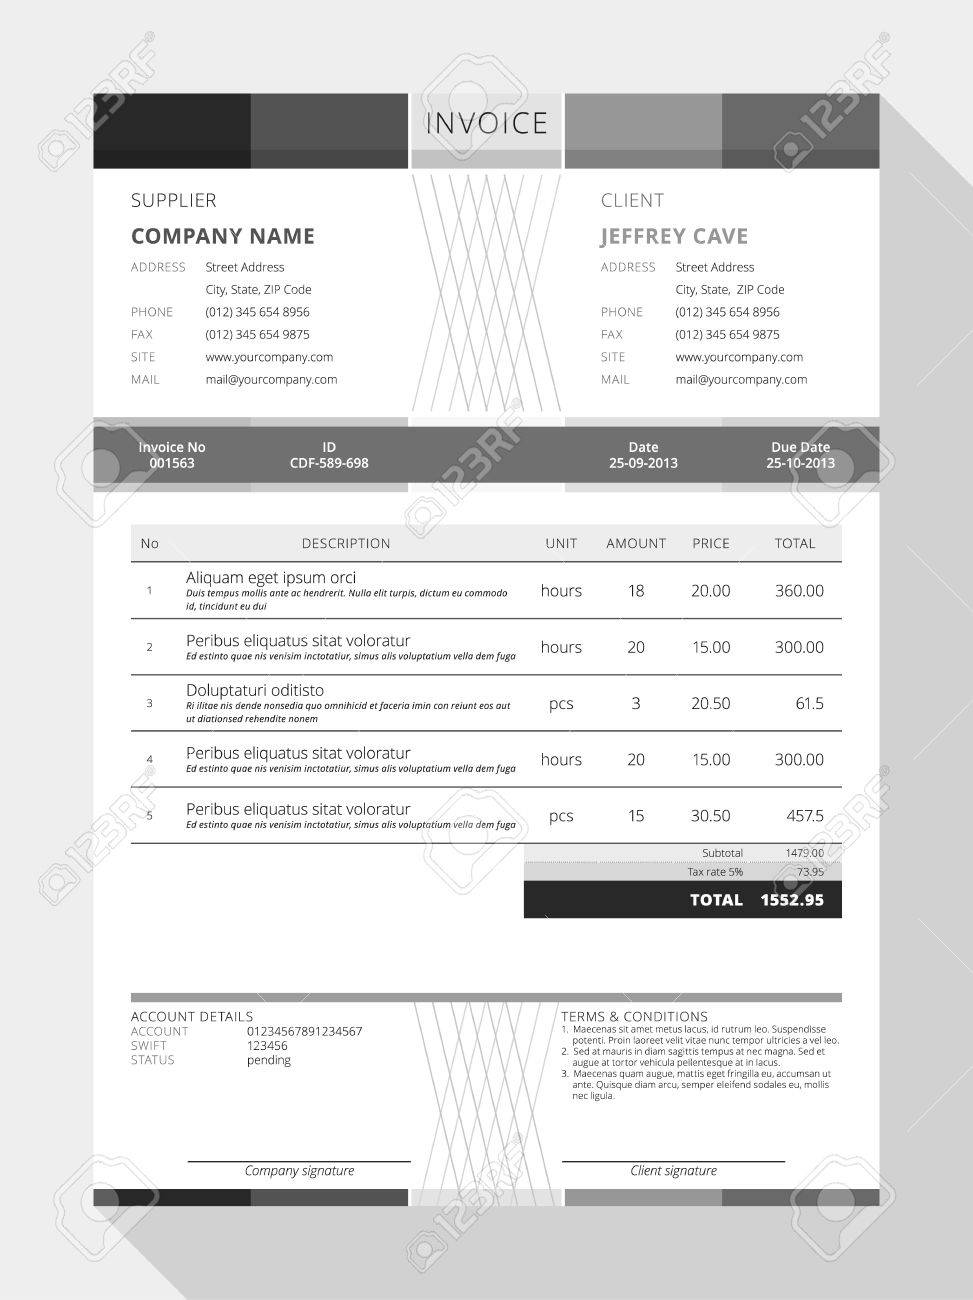 Sandiegolocksmithsus  Gorgeous Design An Invoice  Professional Graphic Design Invoice  With Fetching Vector Customizable Invoice Form Template Design Vector   Design An Invoice With Adorable French Toast Receipt Also Receipt Printers For Square In Addition Thermal Receipt And Scan Receipts Into Excel As Well As Receipt Paper Joint Additionally Personalized Receipts From Happytomco With Sandiegolocksmithsus  Fetching Design An Invoice  Professional Graphic Design Invoice  With Adorable Vector Customizable Invoice Form Template Design Vector   Design An Invoice And Gorgeous French Toast Receipt Also Receipt Printers For Square In Addition Thermal Receipt From Happytomco